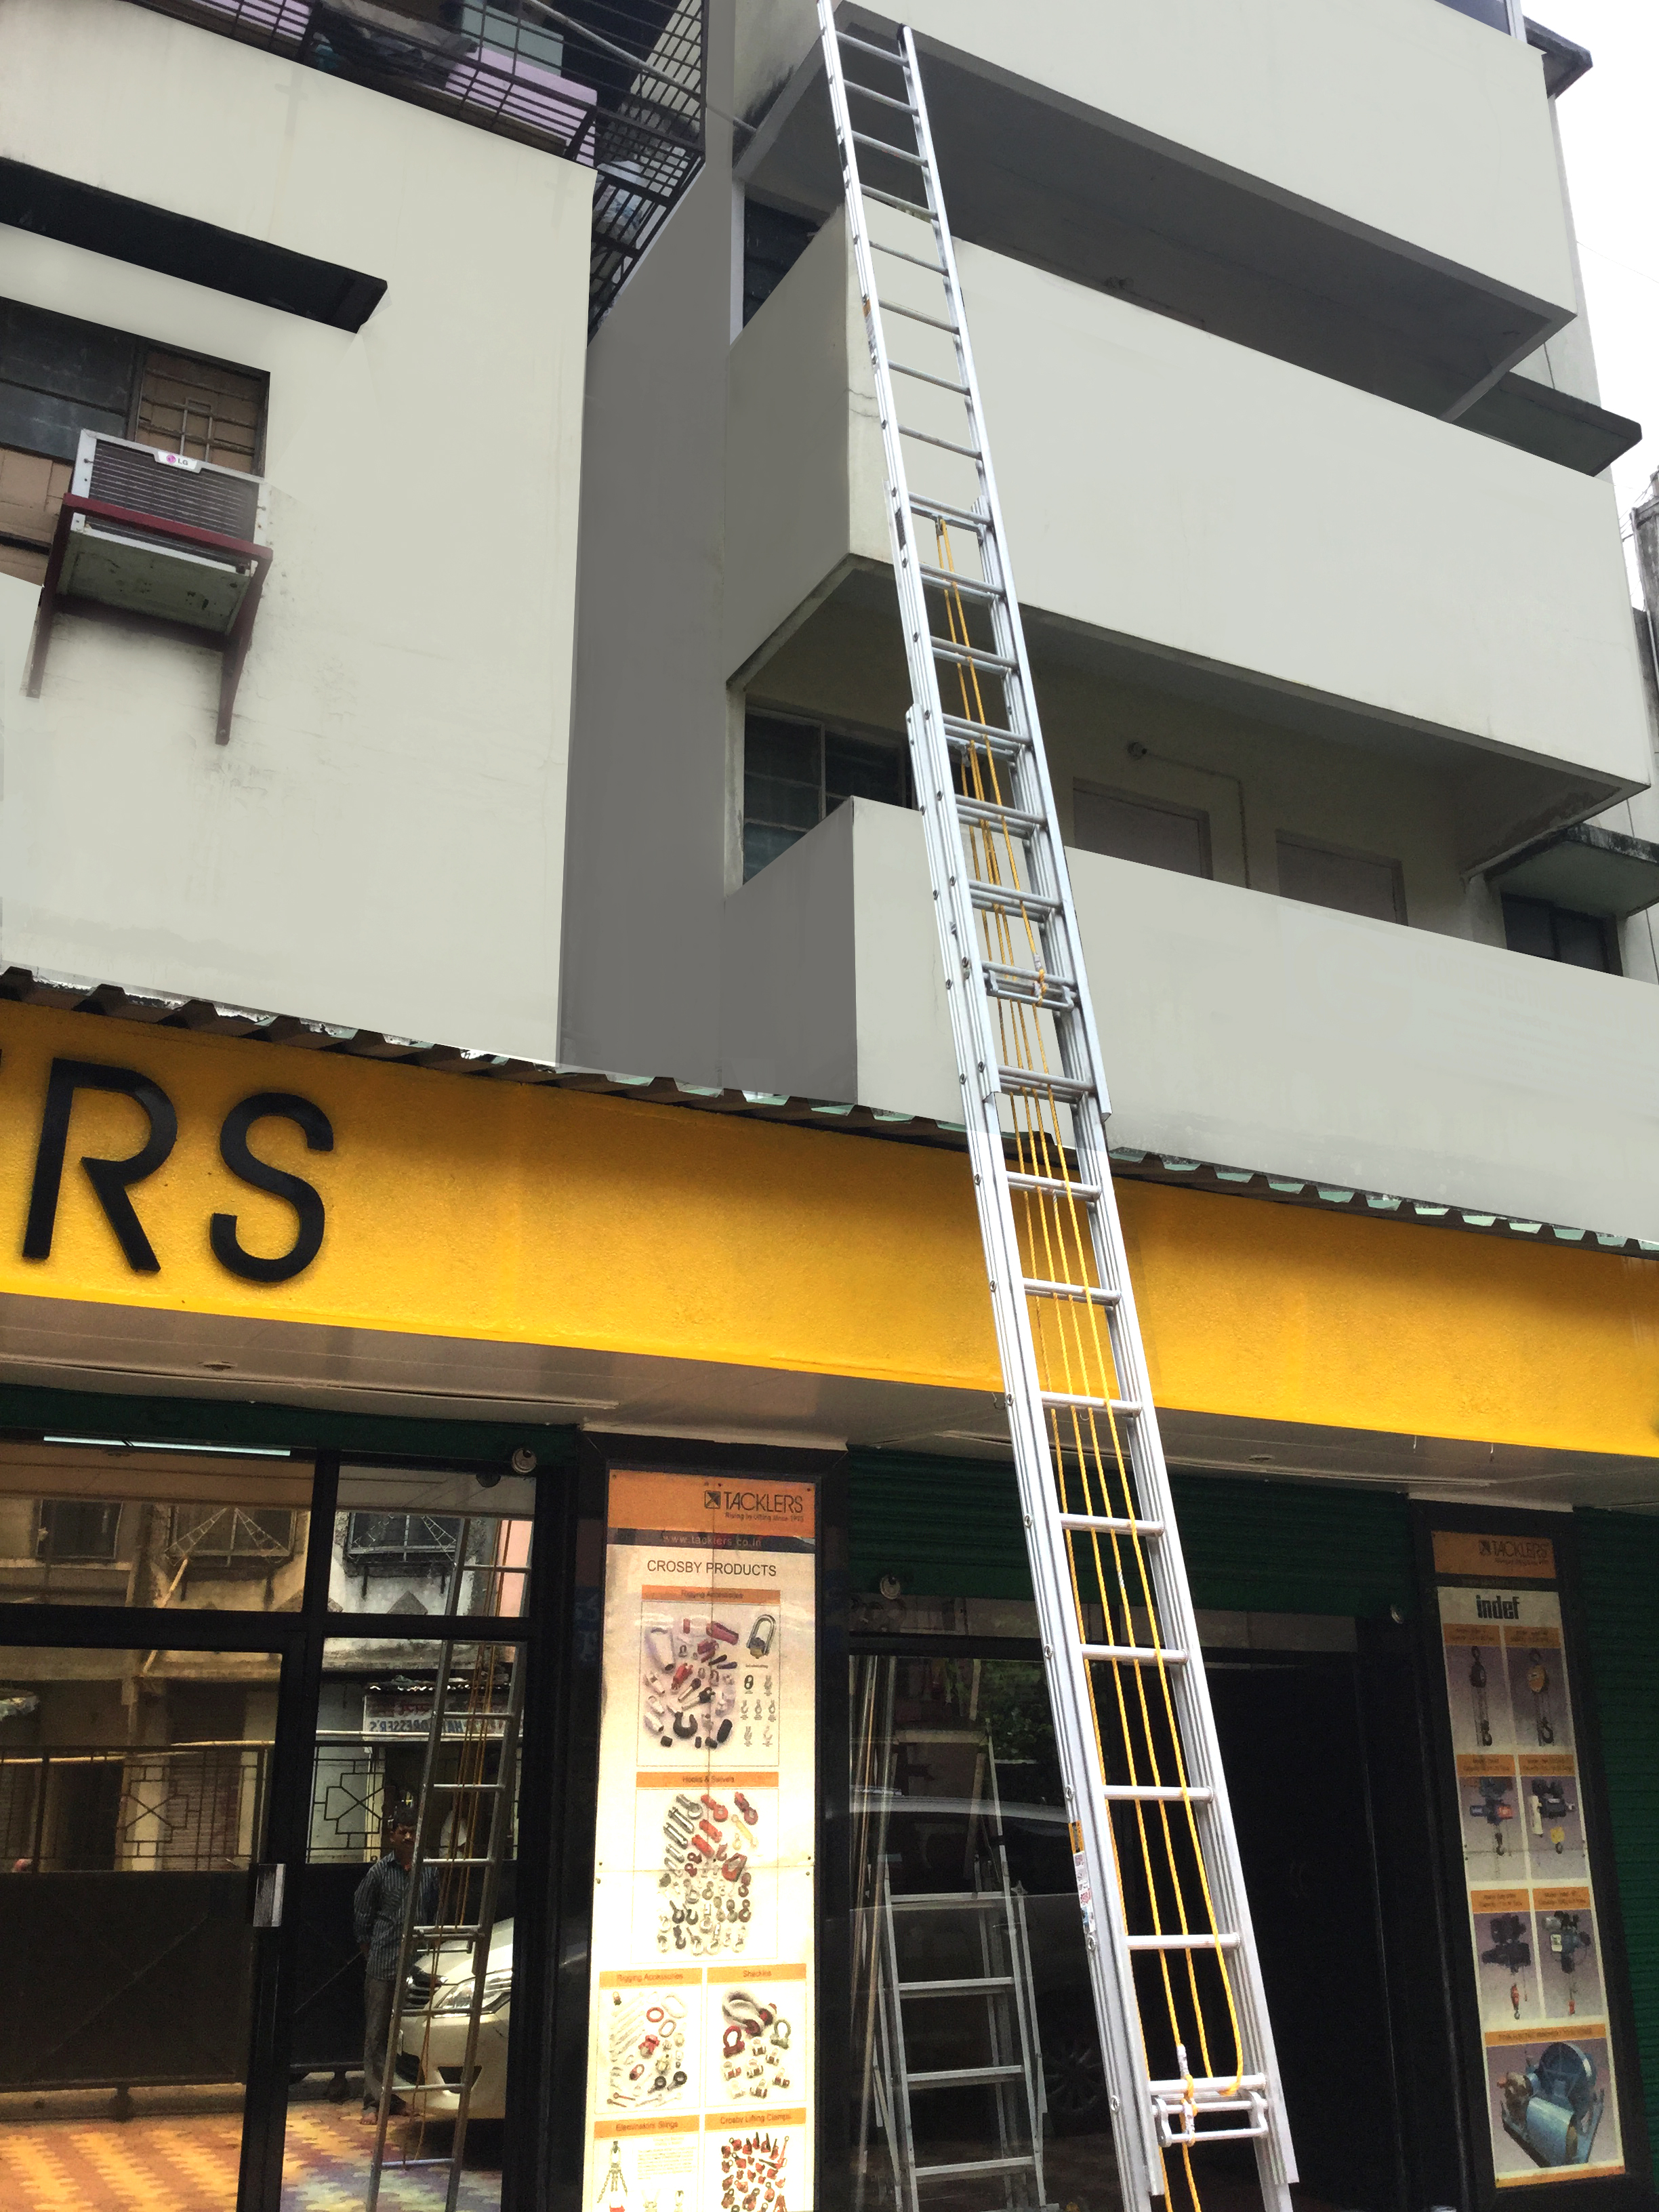 Triple section Wall Extension ladder fully extended